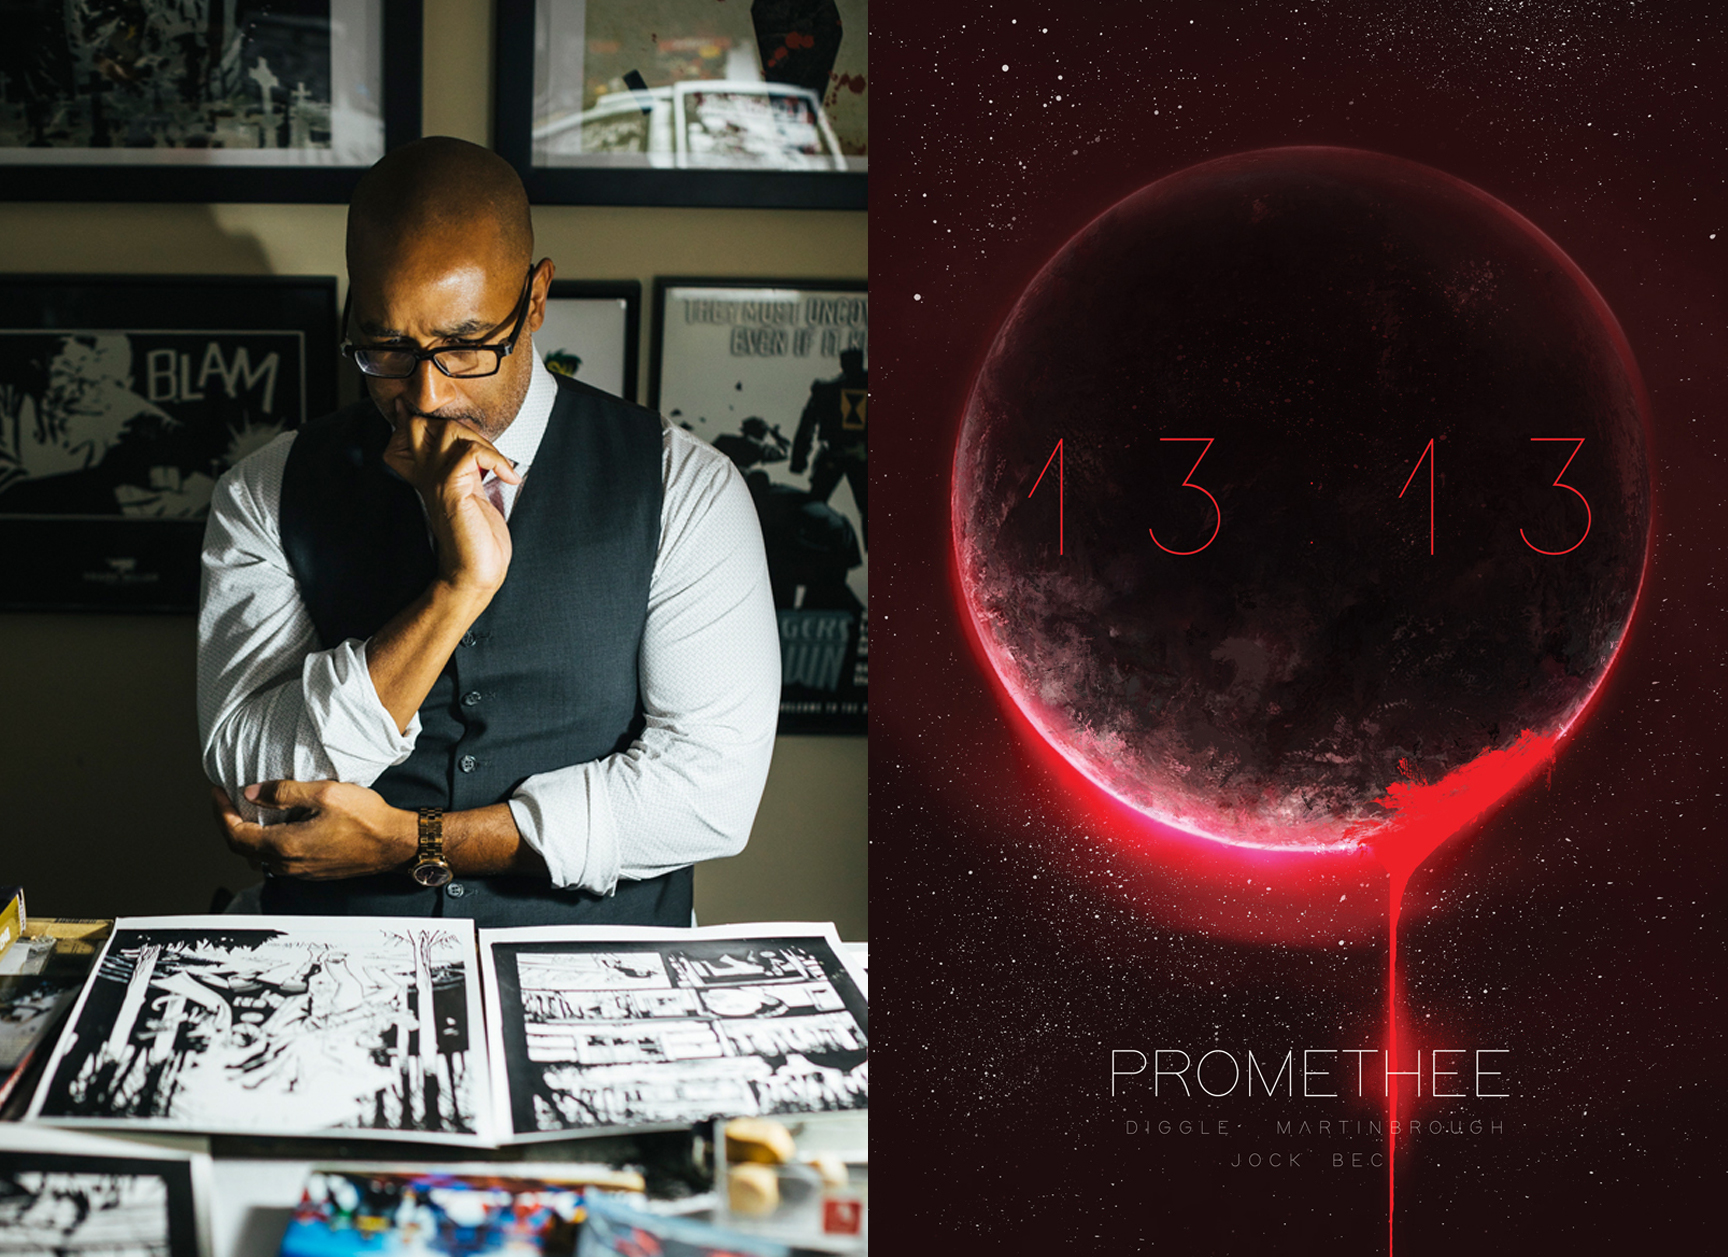 """<p """"="""""""">A photograph of Shawn Martinbrough looking over comic-book artwork and the cover of <em>Prométhée 13:13</em>, which features a red-backlit celestial sphere."""